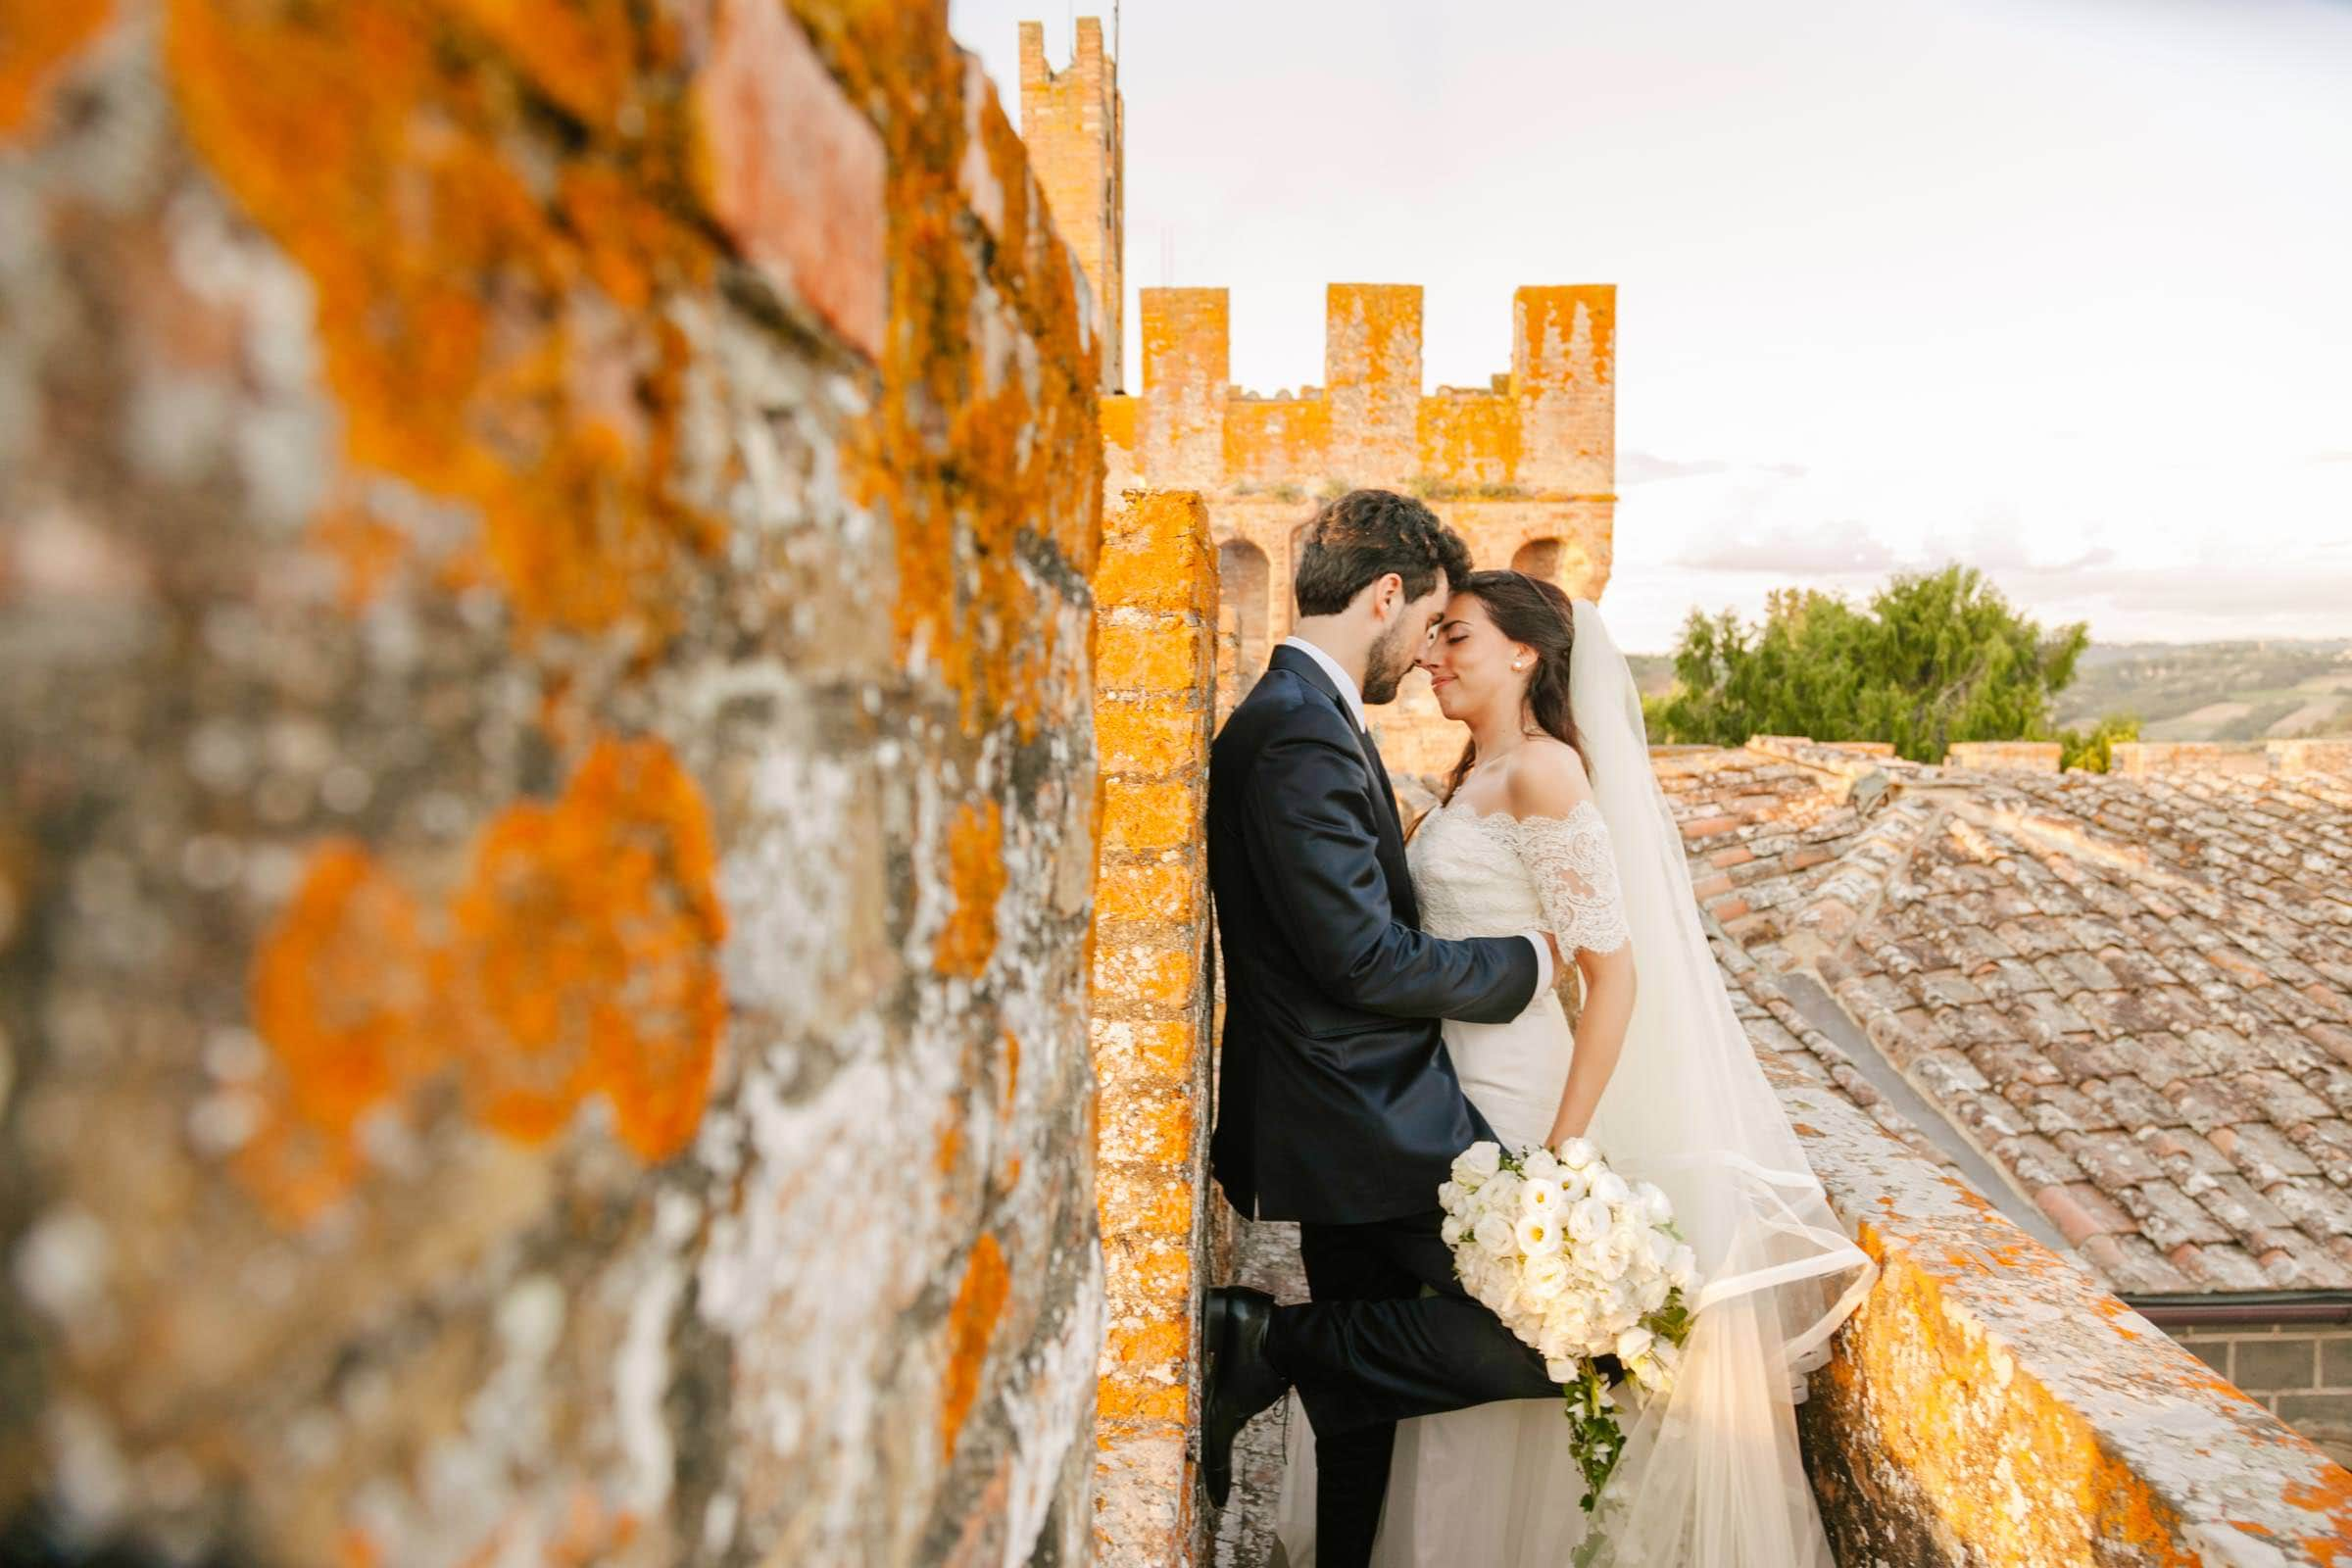 castello di oliveto wedding photos